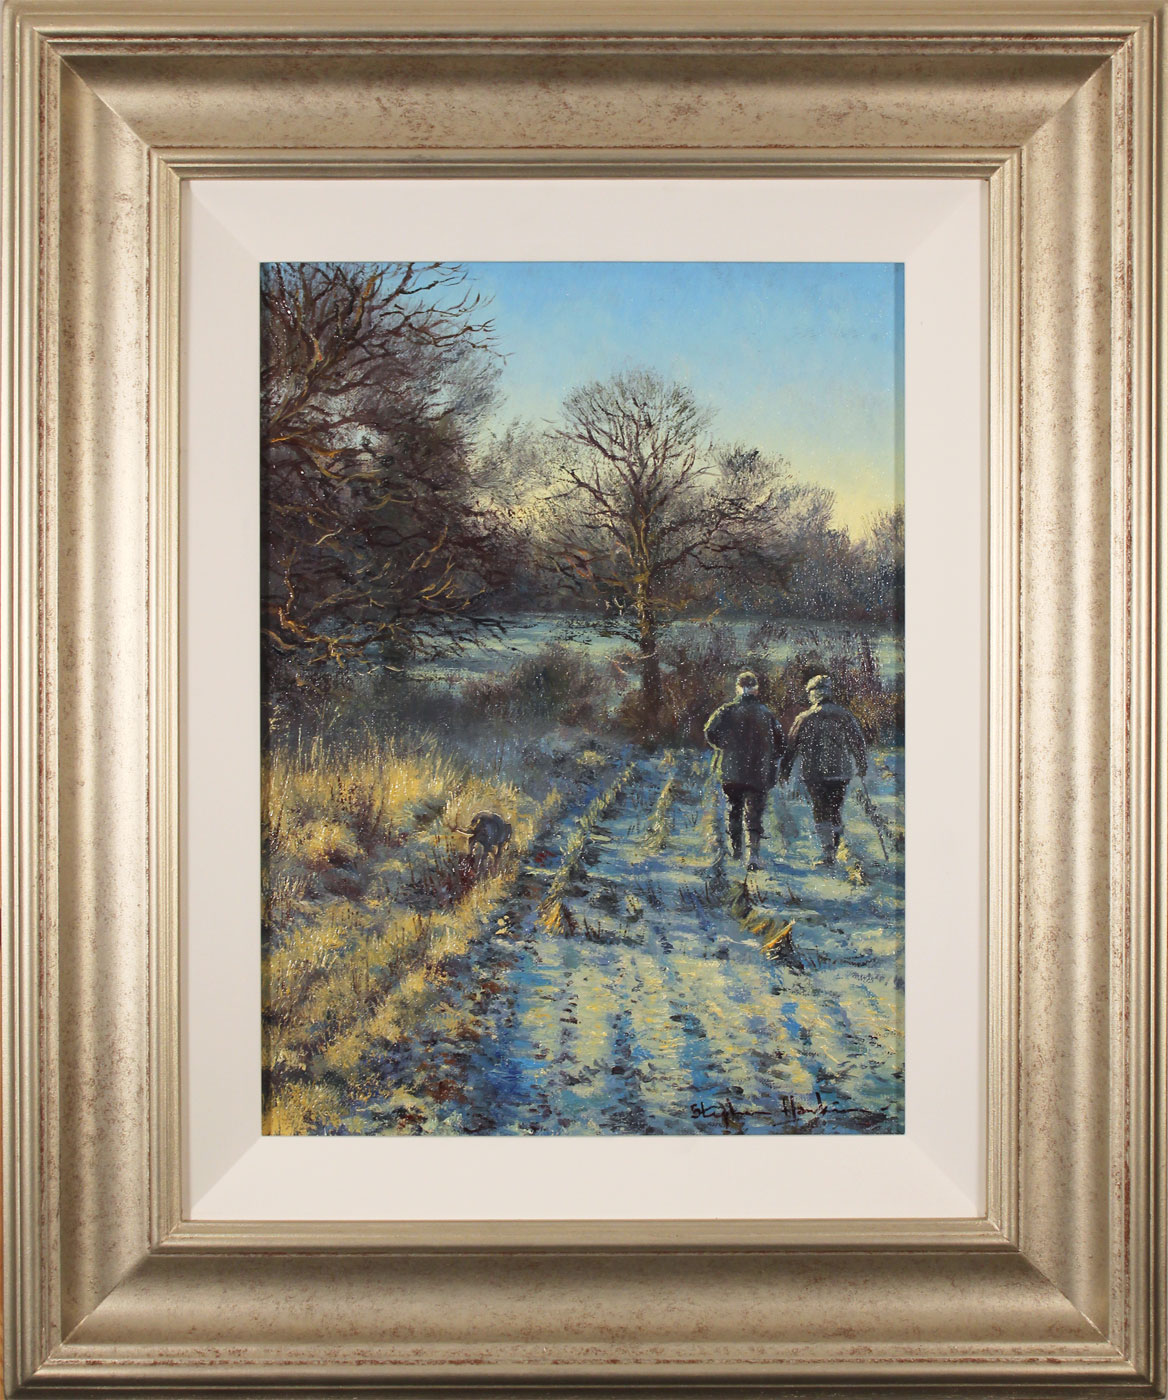 Stephen Hawkins, Original oil painting on canvas, First Frost Click to enlarge